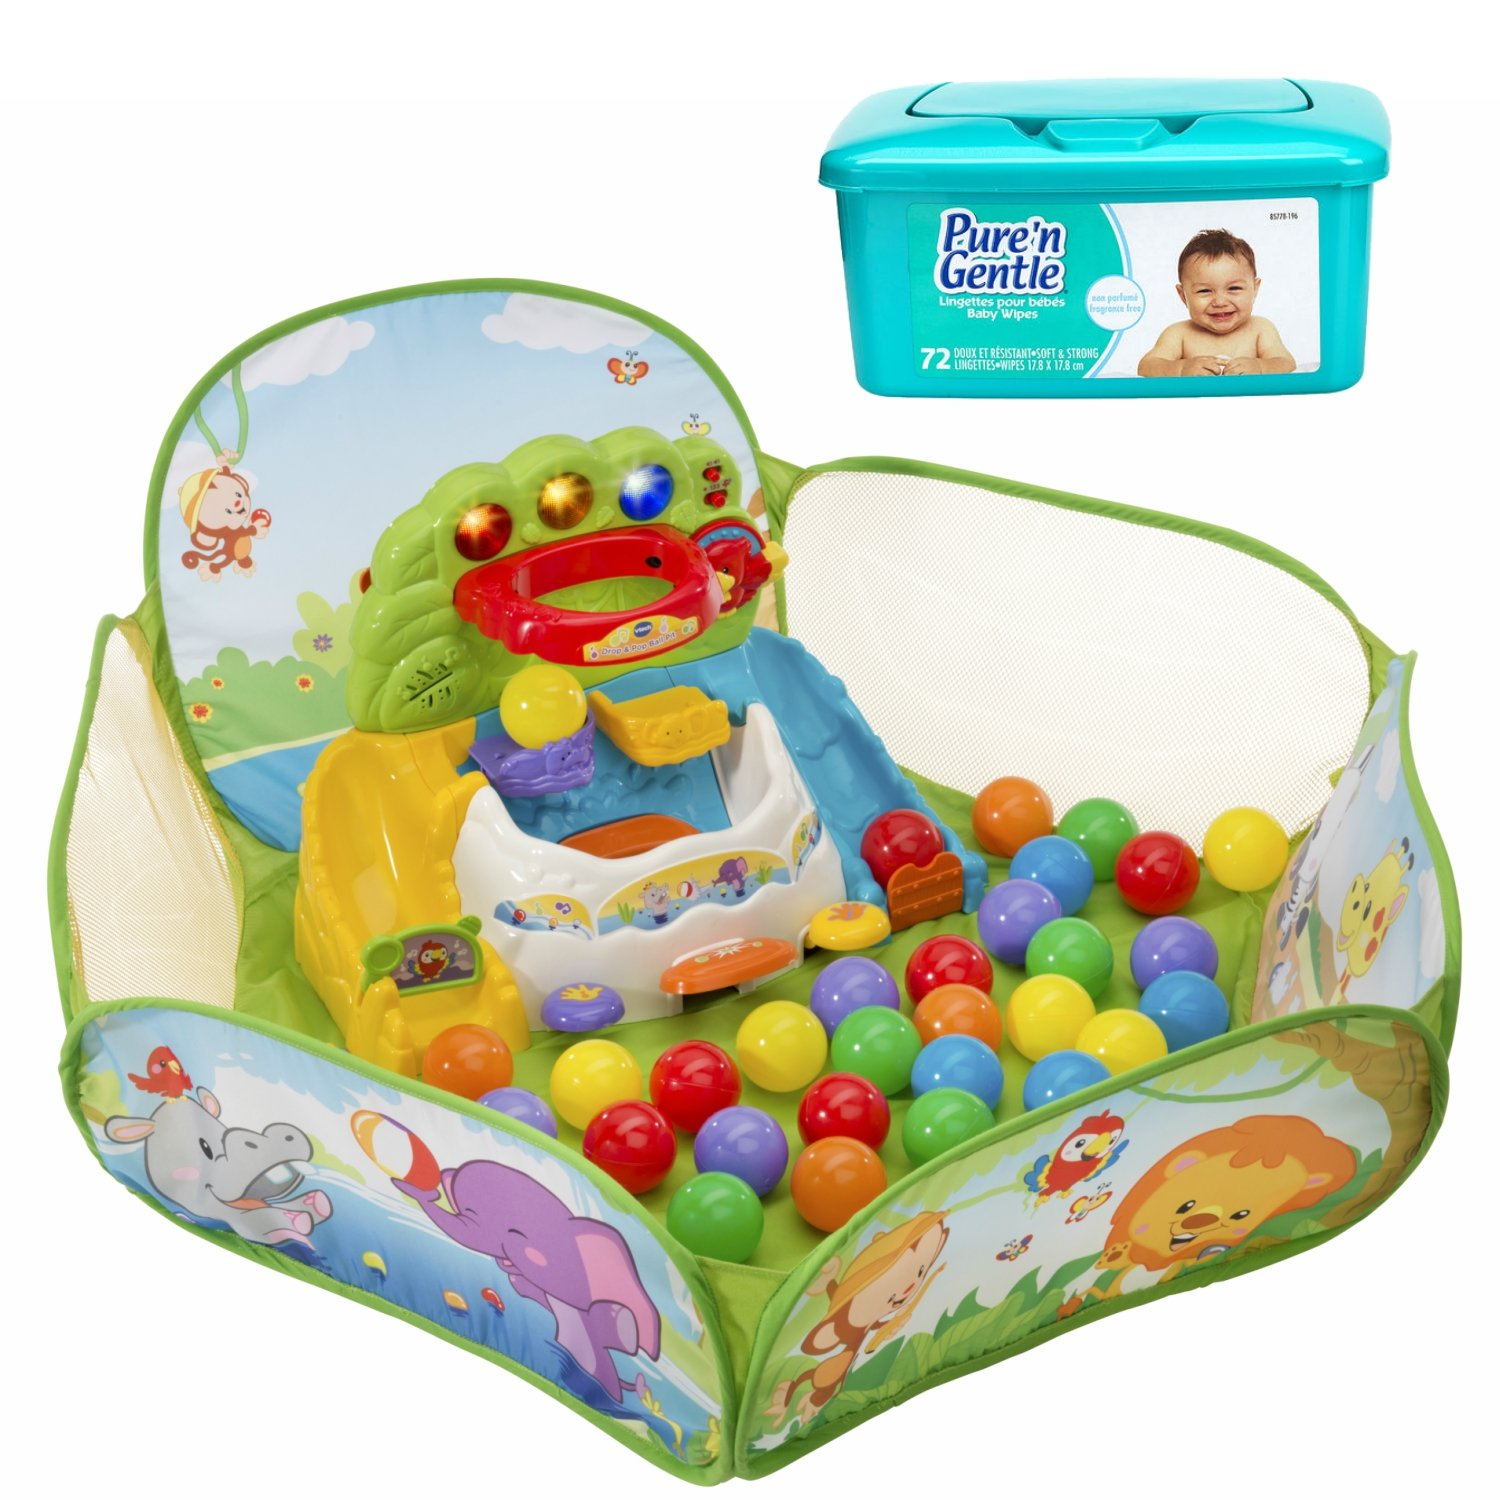 NEW! VTech Lights and Sounds Pop-a-Balls, Drop & Pop Ball Pit Baby Activity Center with Hypoallergenic Baby Wipes